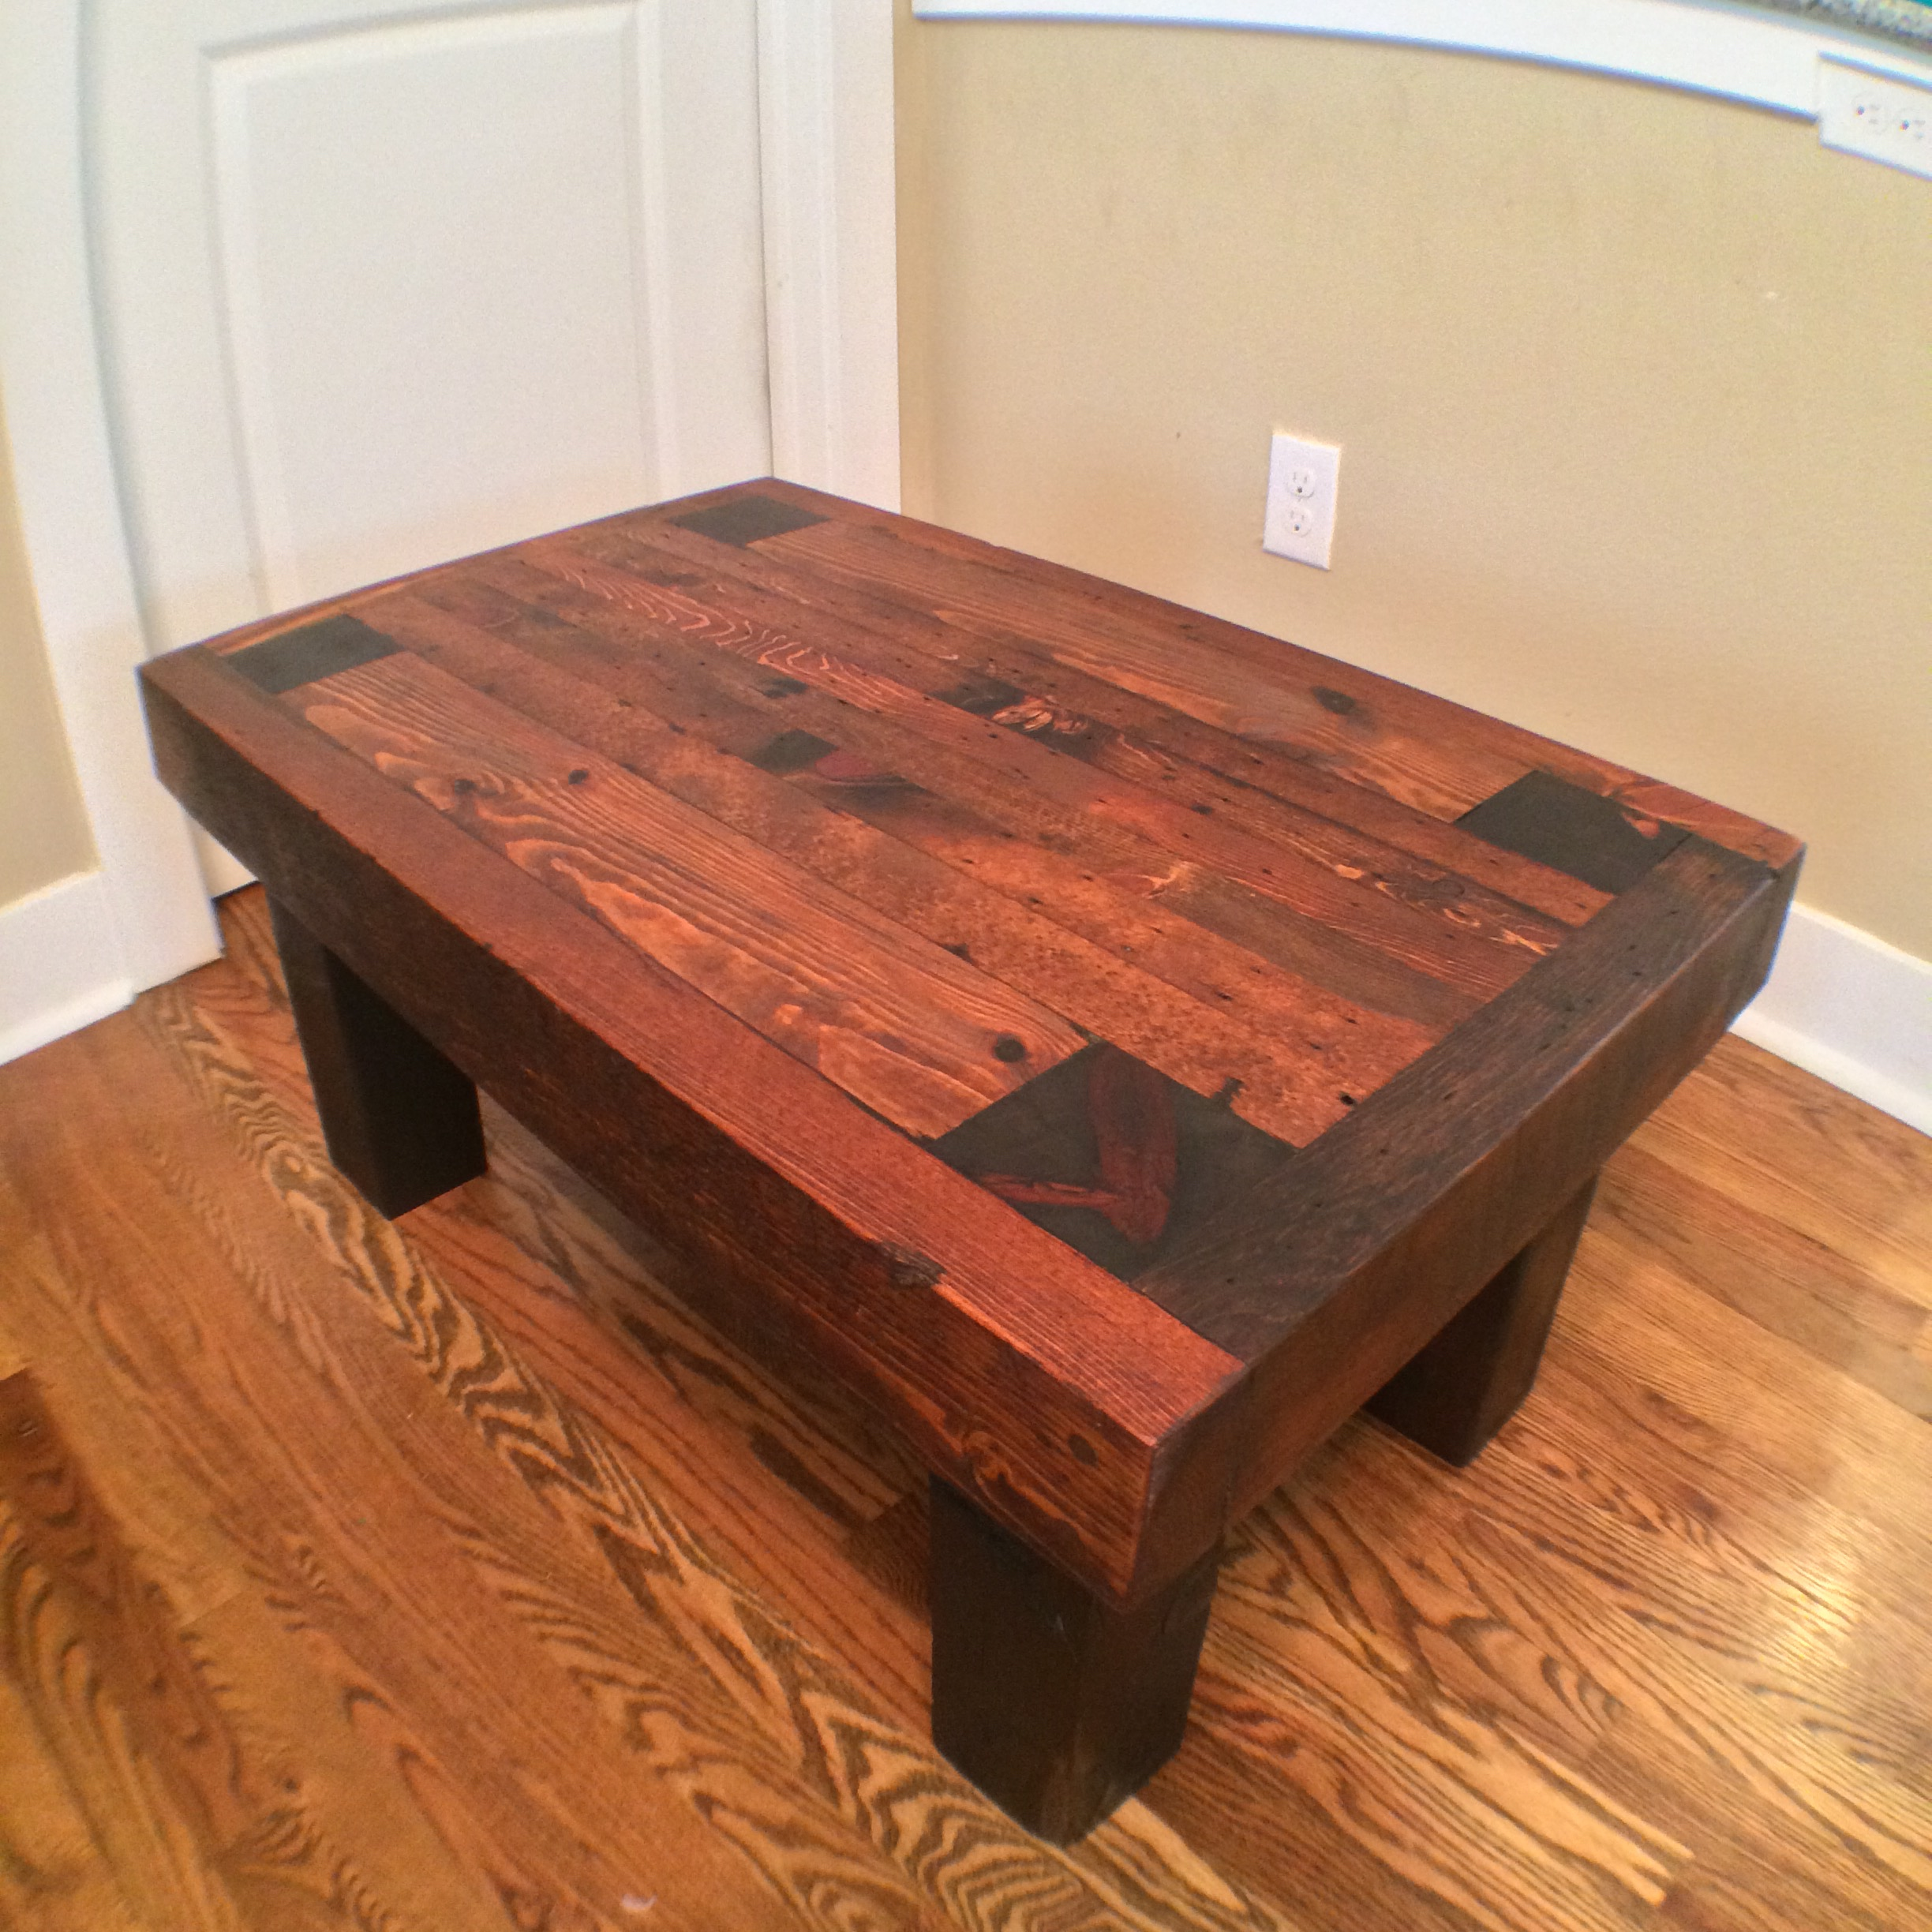 Coffee table made from late 1800's wall studs. This material was pulled from a remodel in Denver's Curtis Park neighborhood.